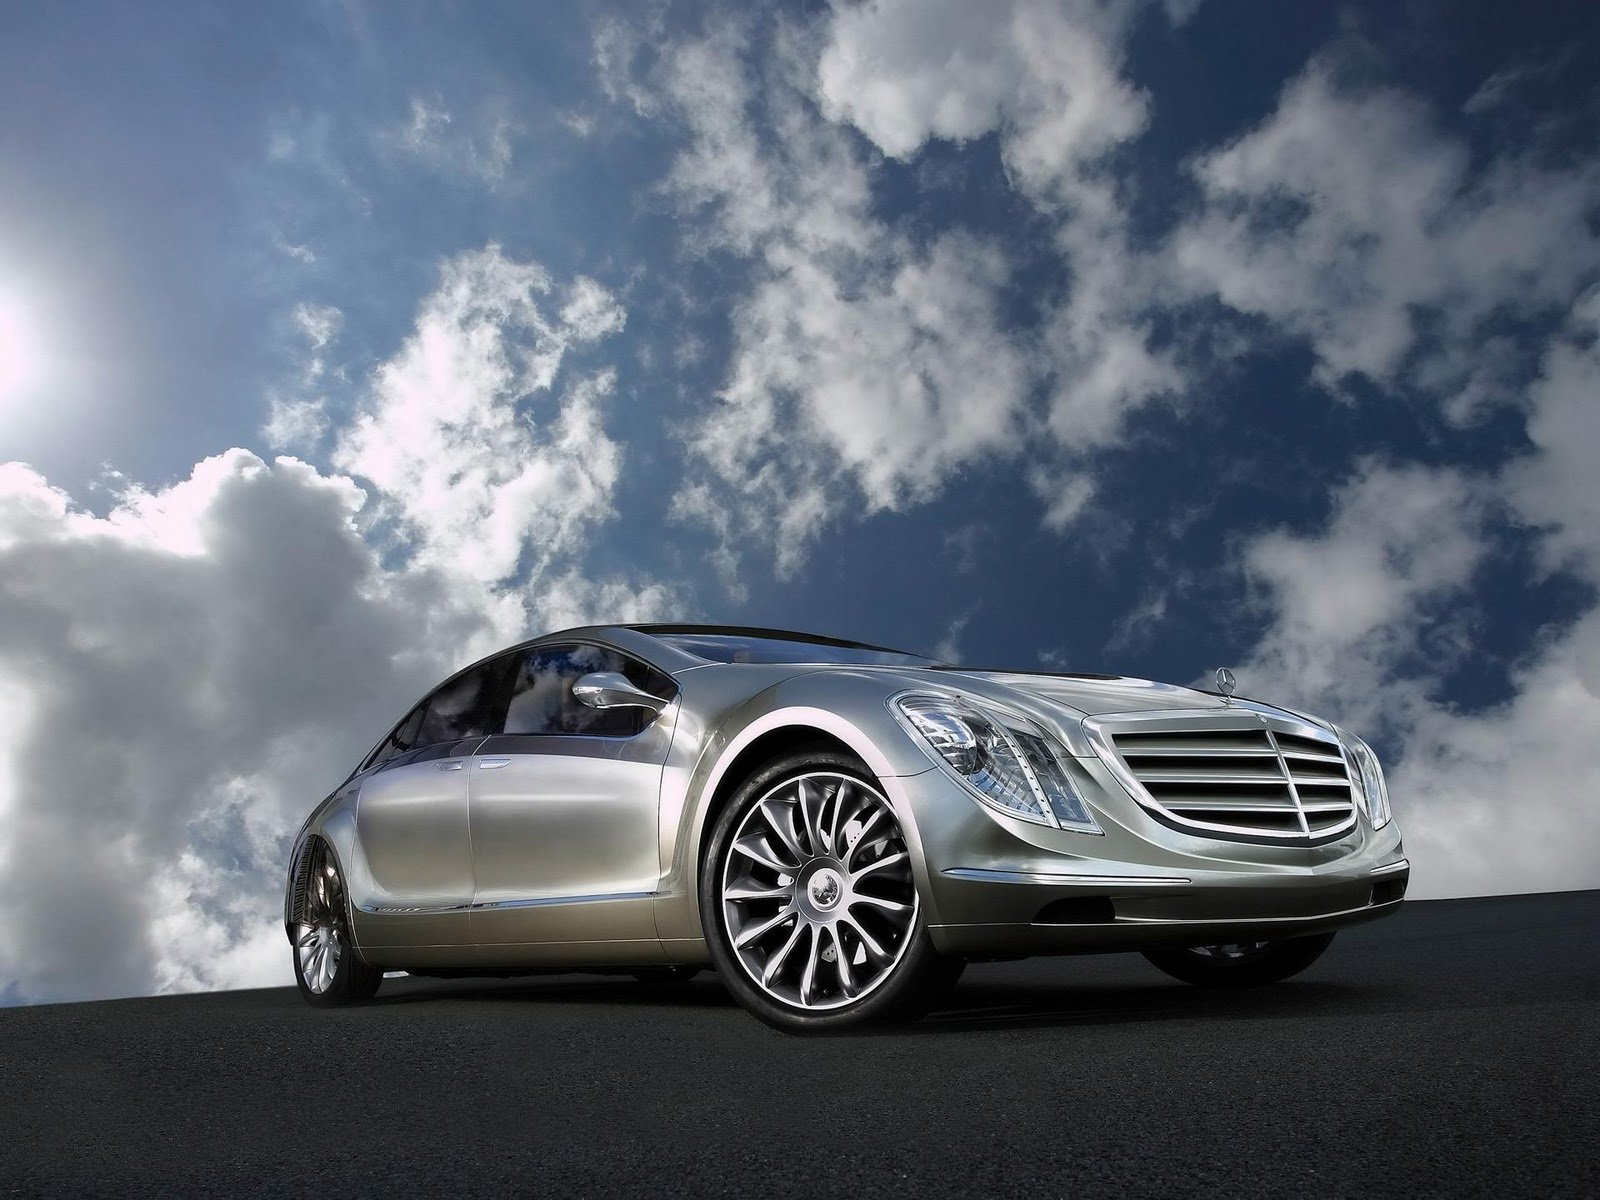 Latest Mercedes Benz Wallpaper Desktop Cars N Bikes Free Download